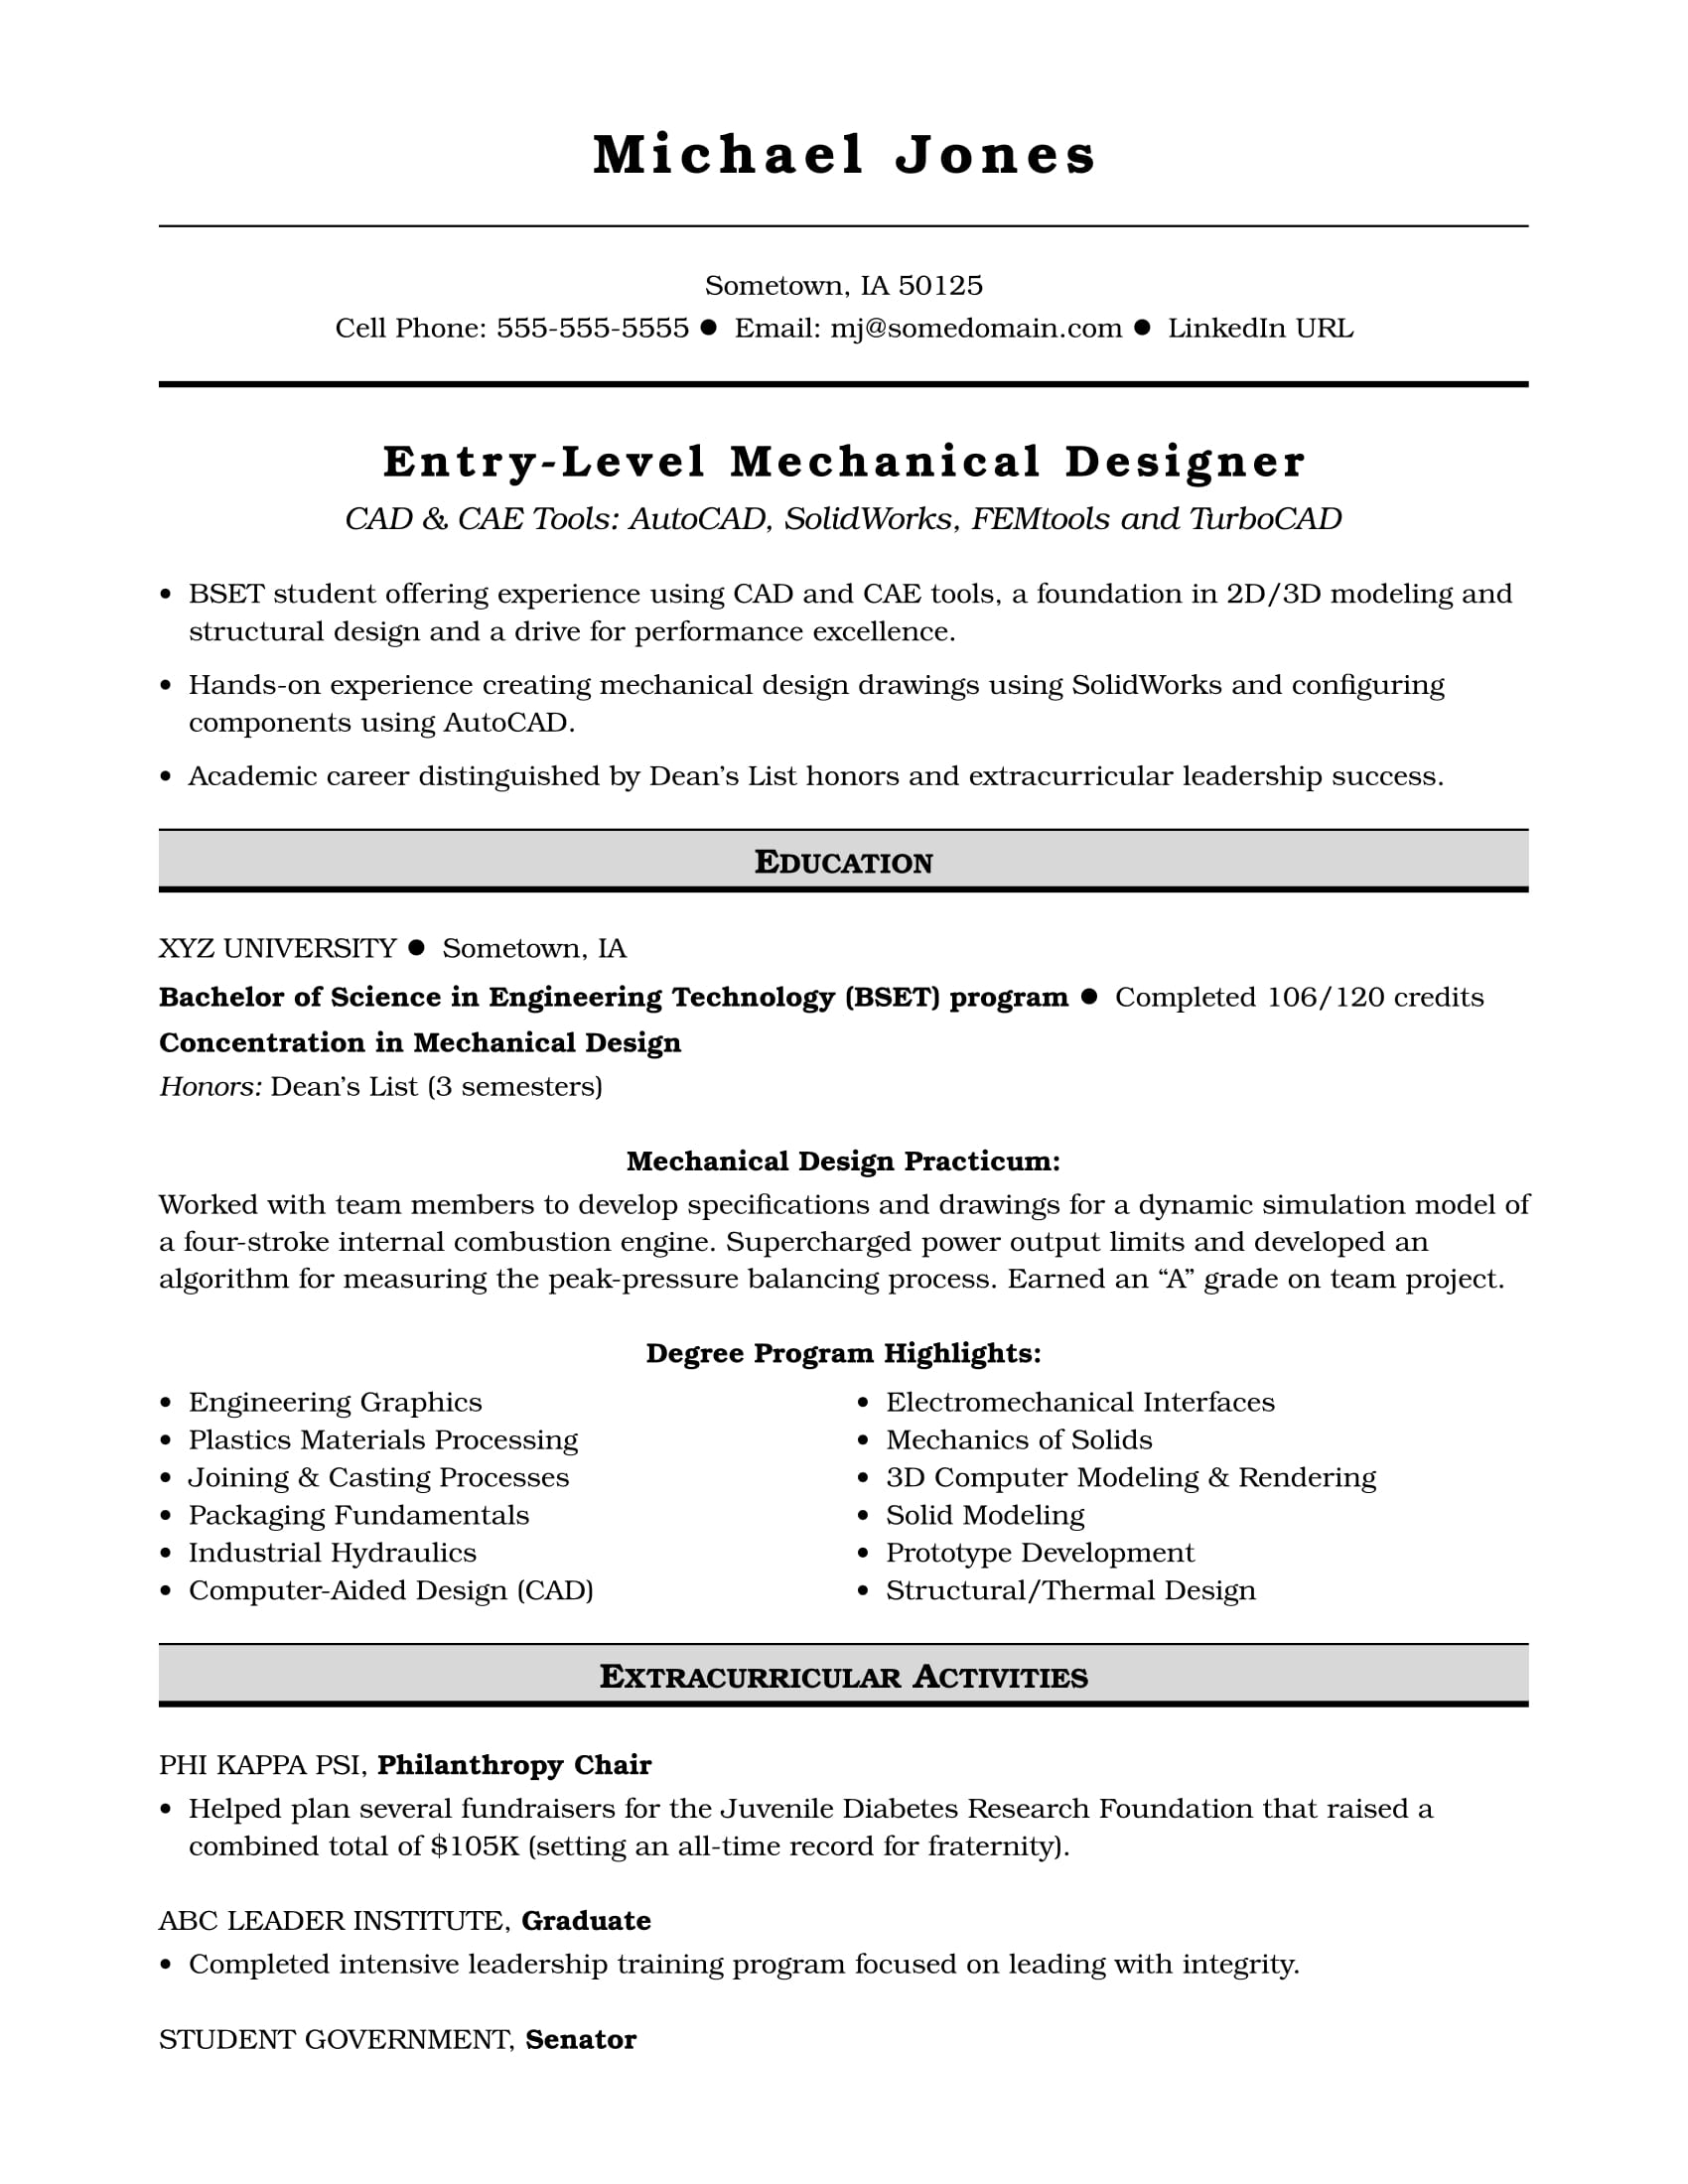 Sample Resume For An EntryLevel Mechanical Designer  MonsterCom